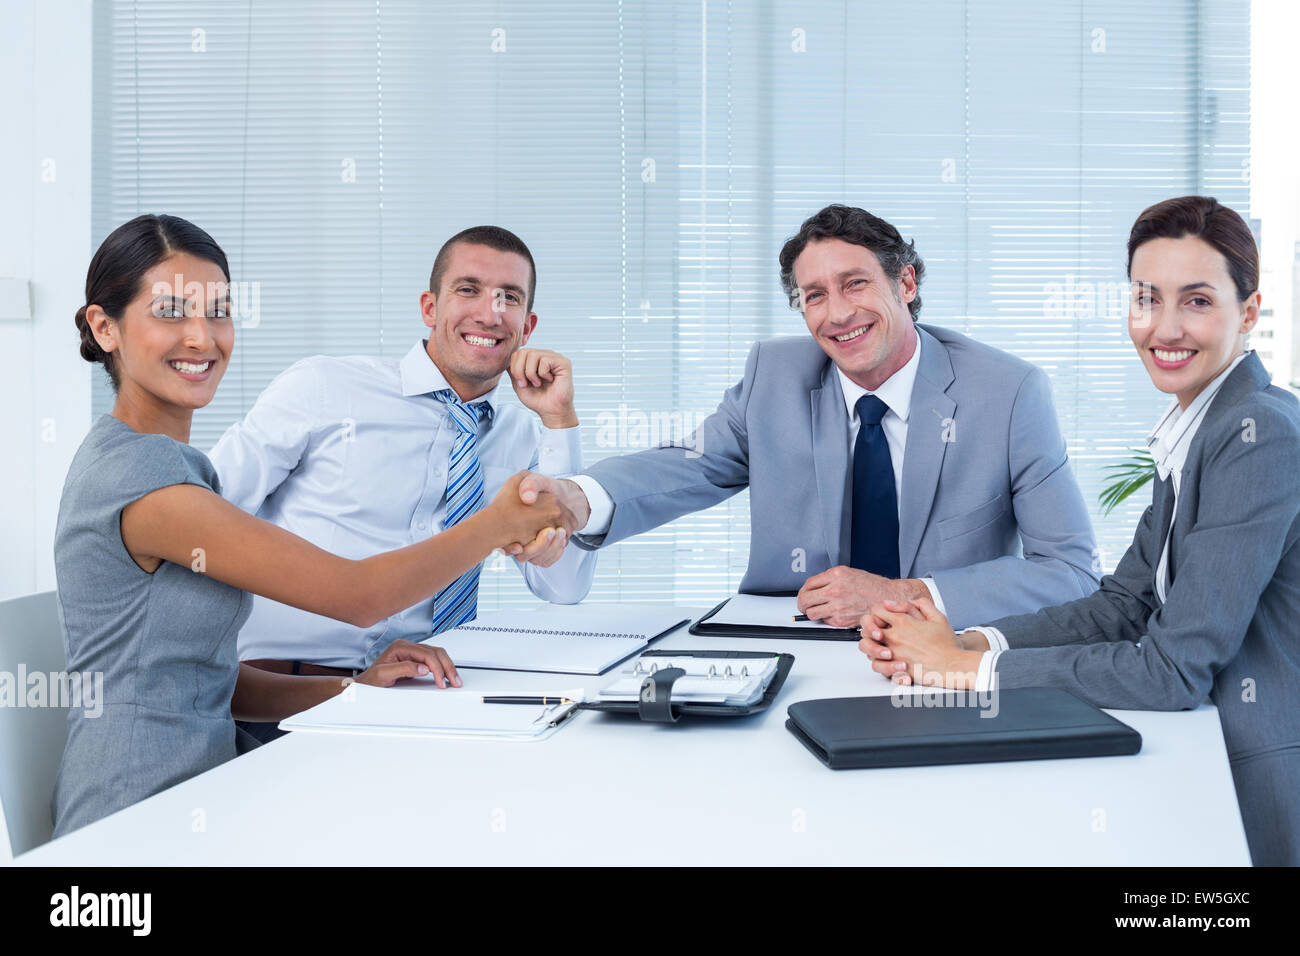 Business team greeting each other - Stock Image